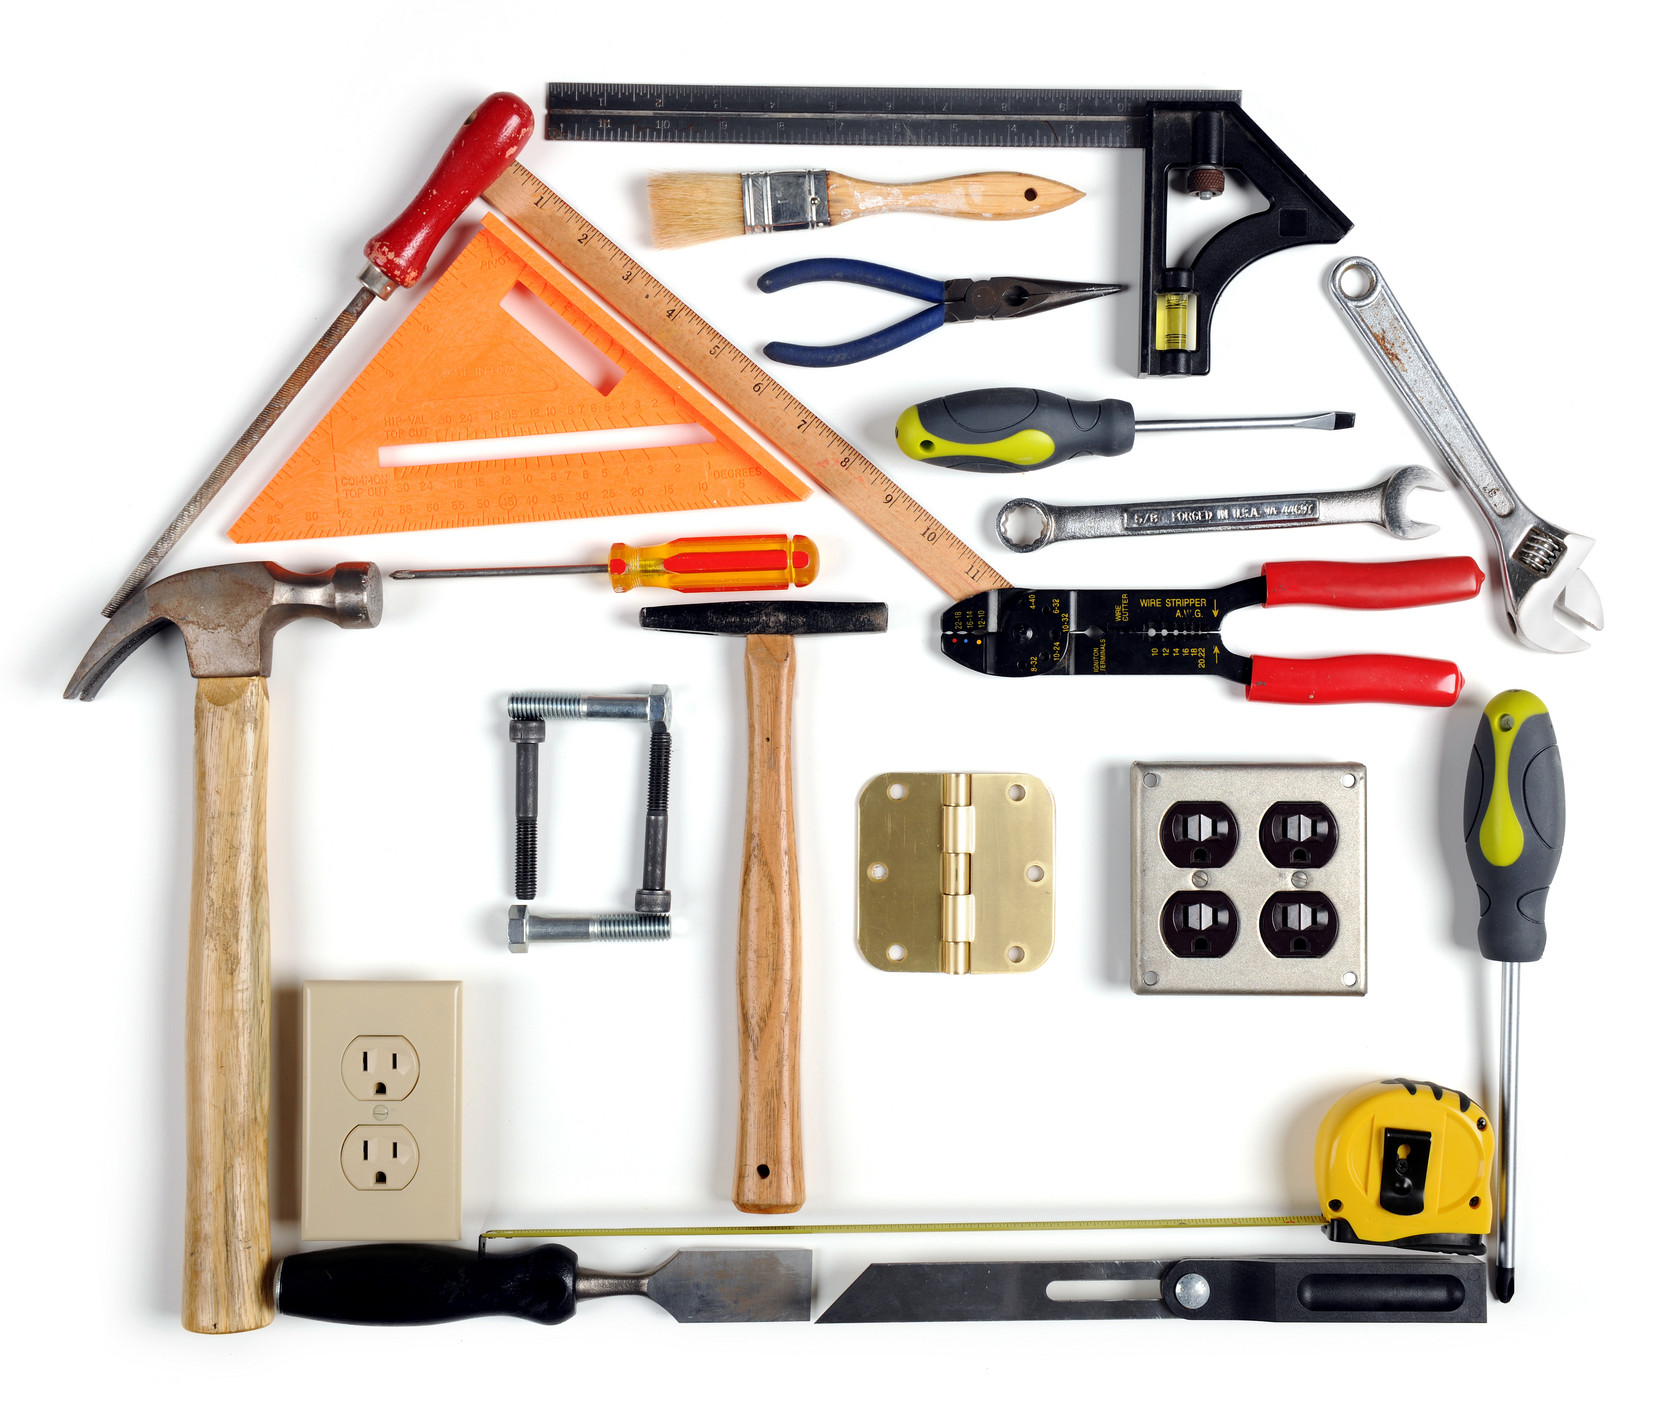 Best Value Home Improvements: Top 10 Inexpensive Home Improvement Tips To Increase Value